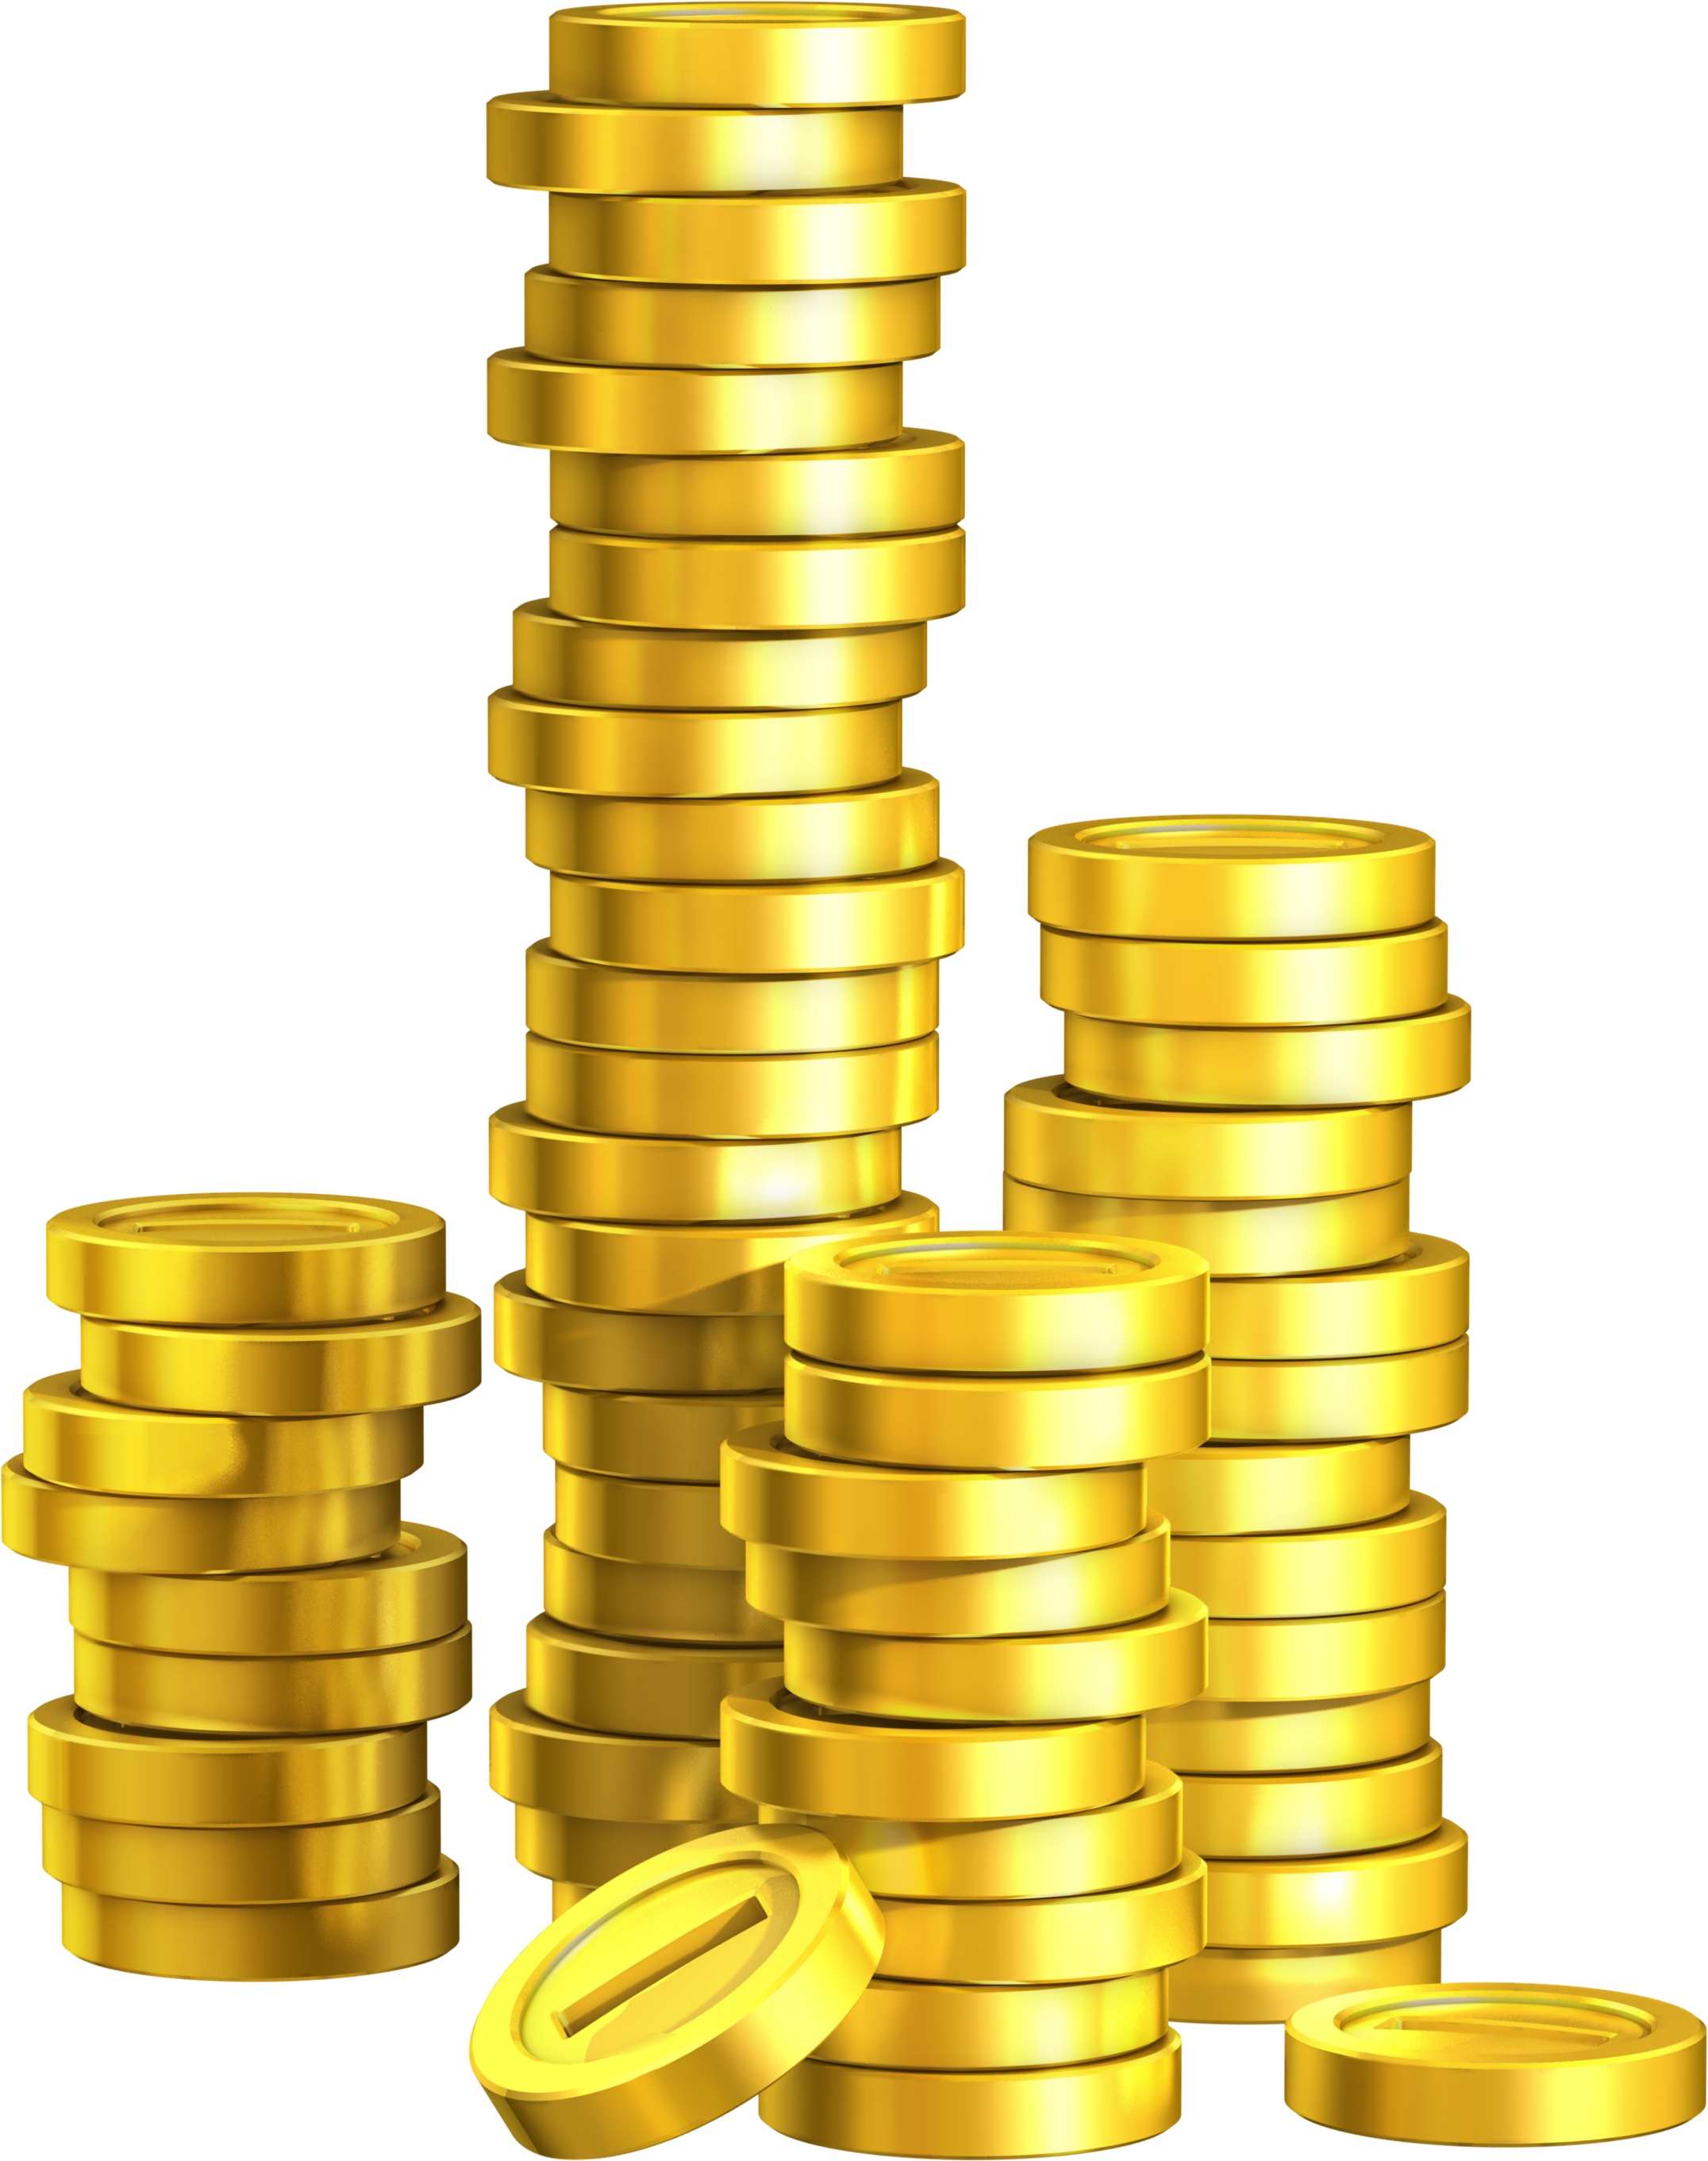 Gold Coins PNG HD - 128567